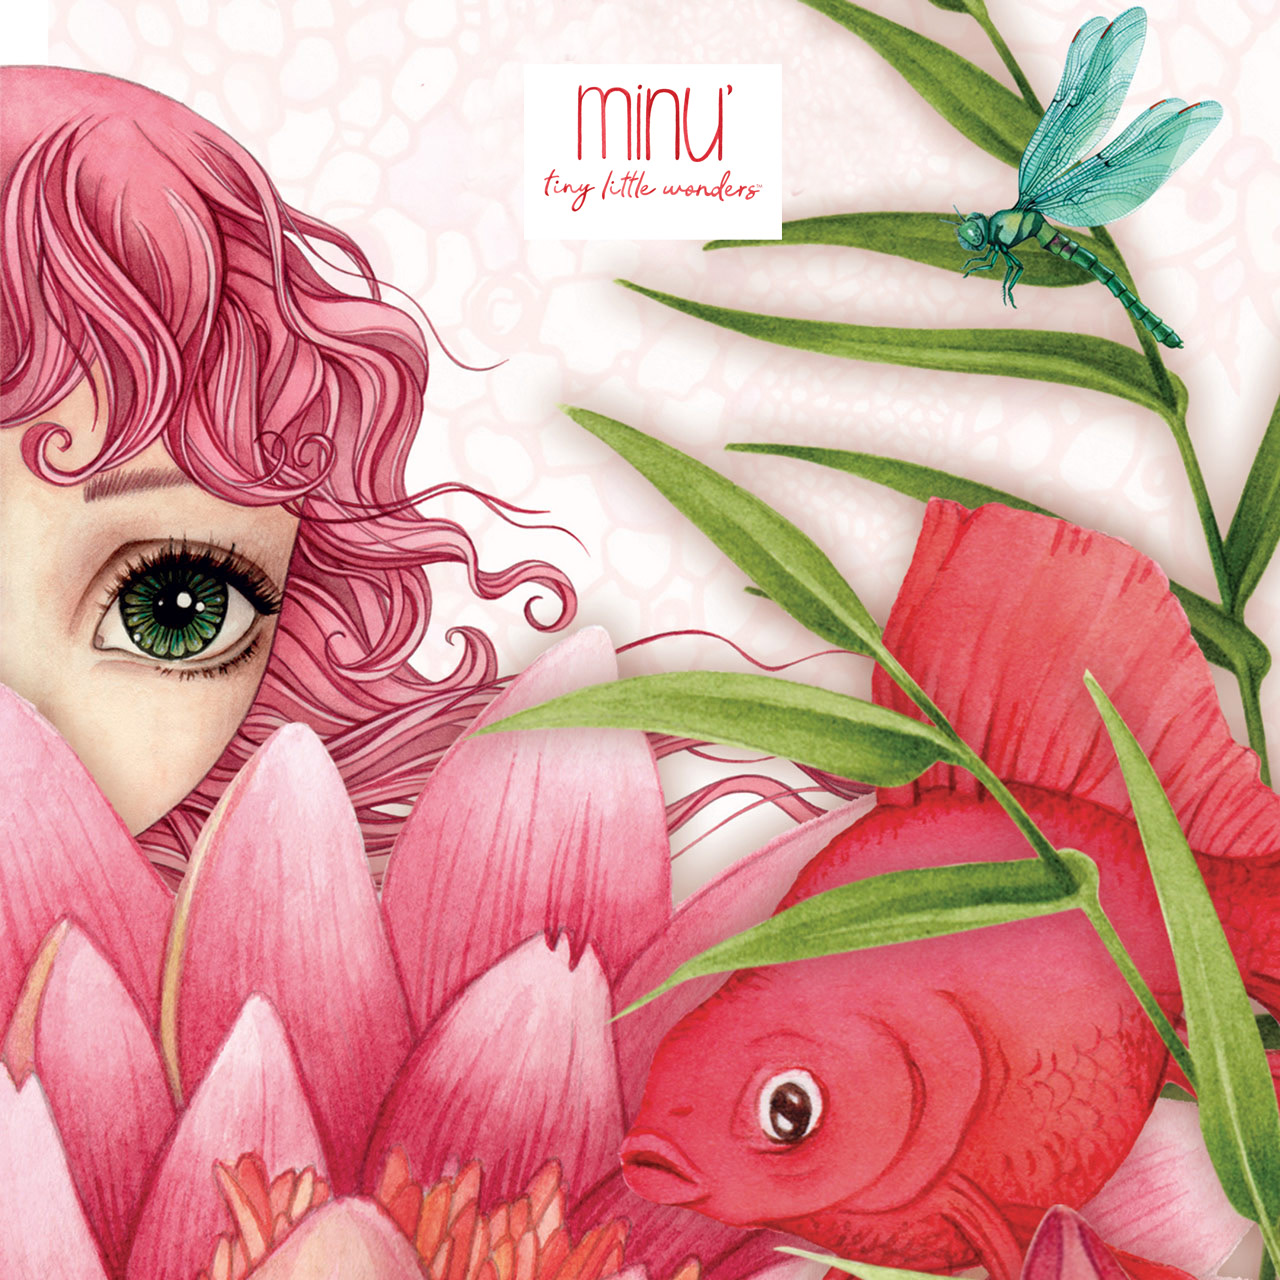 yume minu life at the pond collection